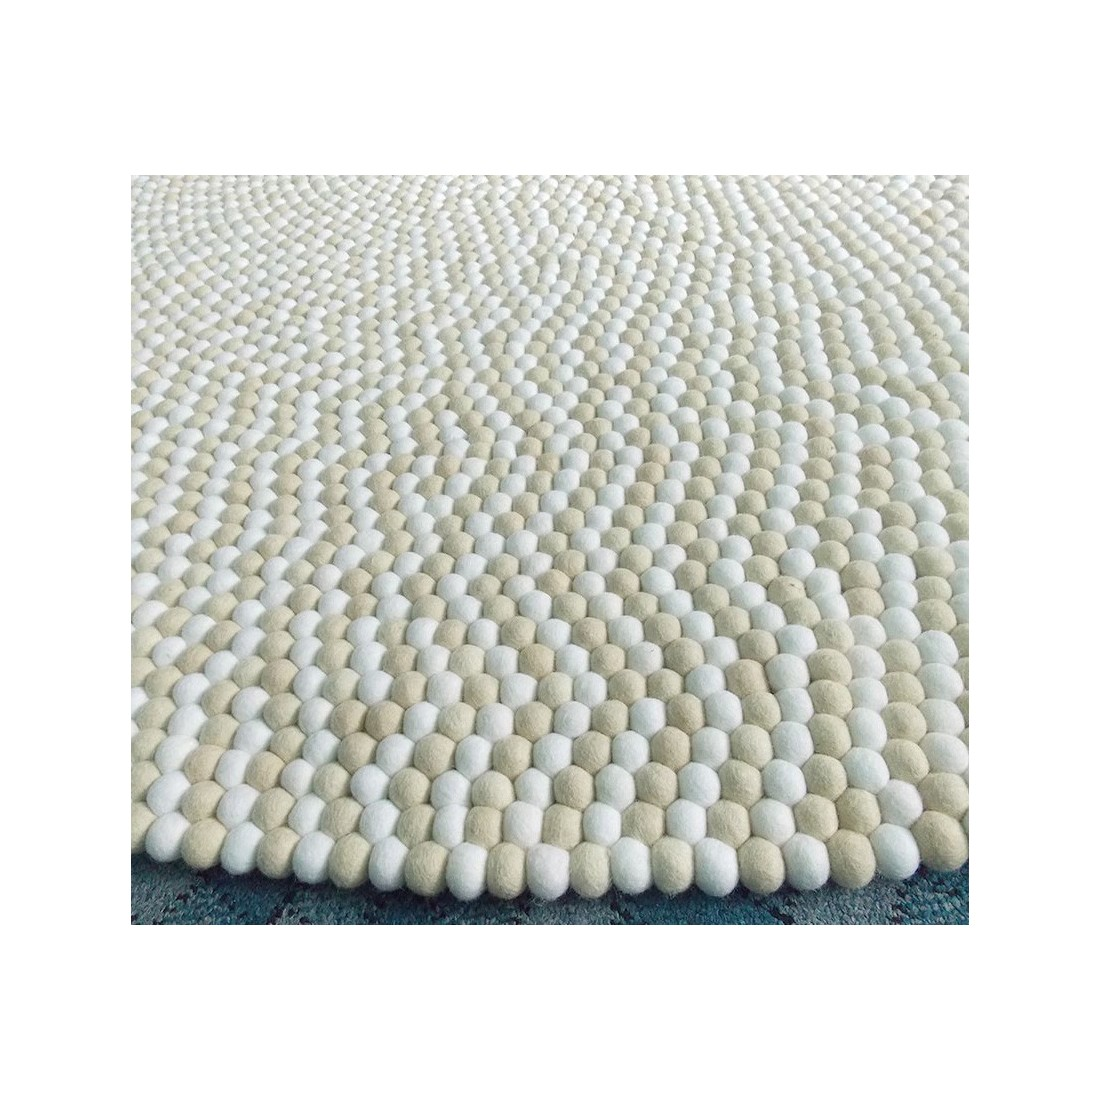 rectangle light golden felt ball rug for nursery - felt ball & rugs